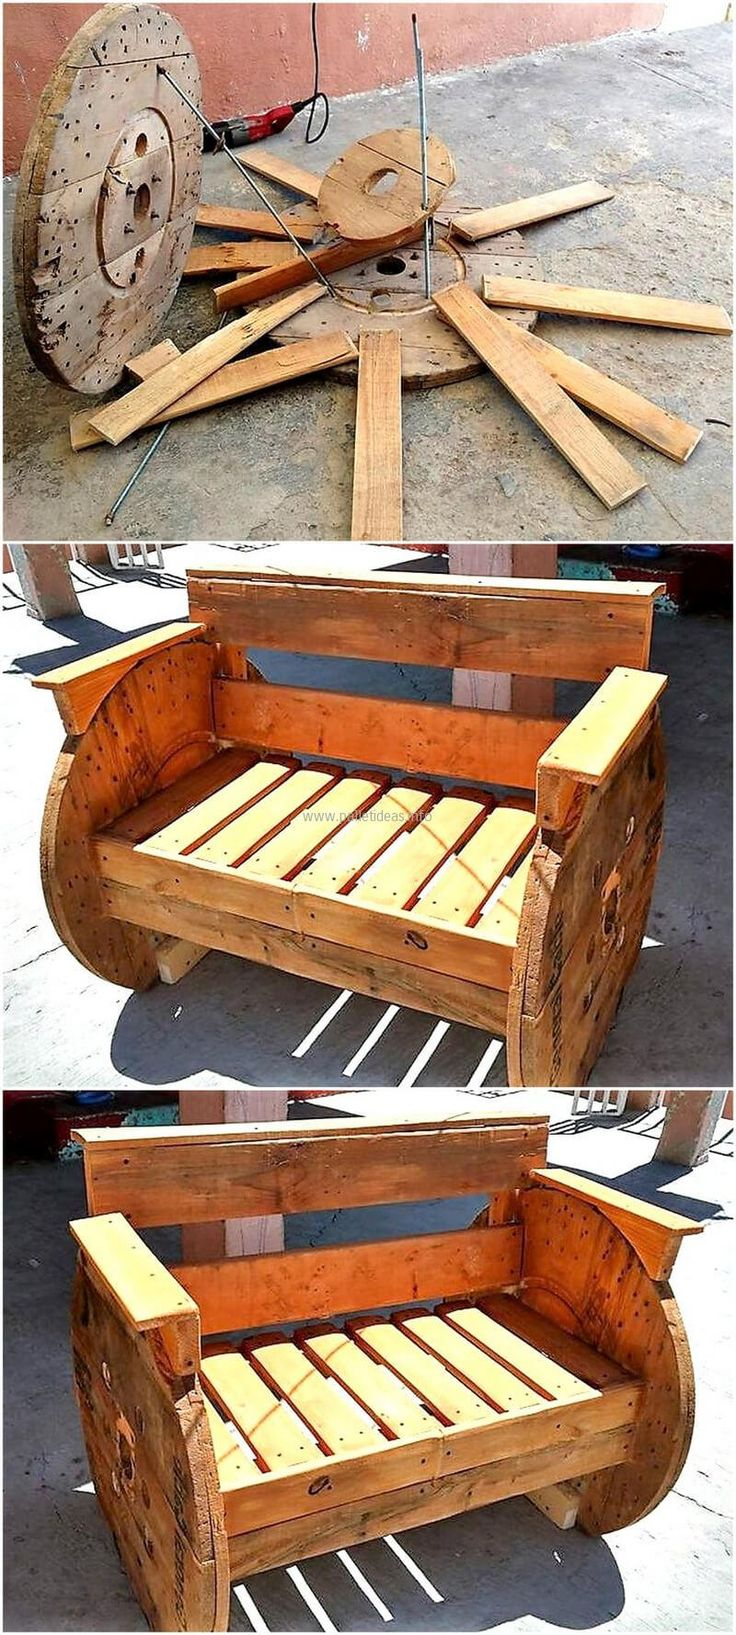 Here is an idea for fulfilling the seating need in the patio, the design of the bench is innovative and it just like a cable reel. There are no legs of the bench and the cable reel design is created on its side for the support.